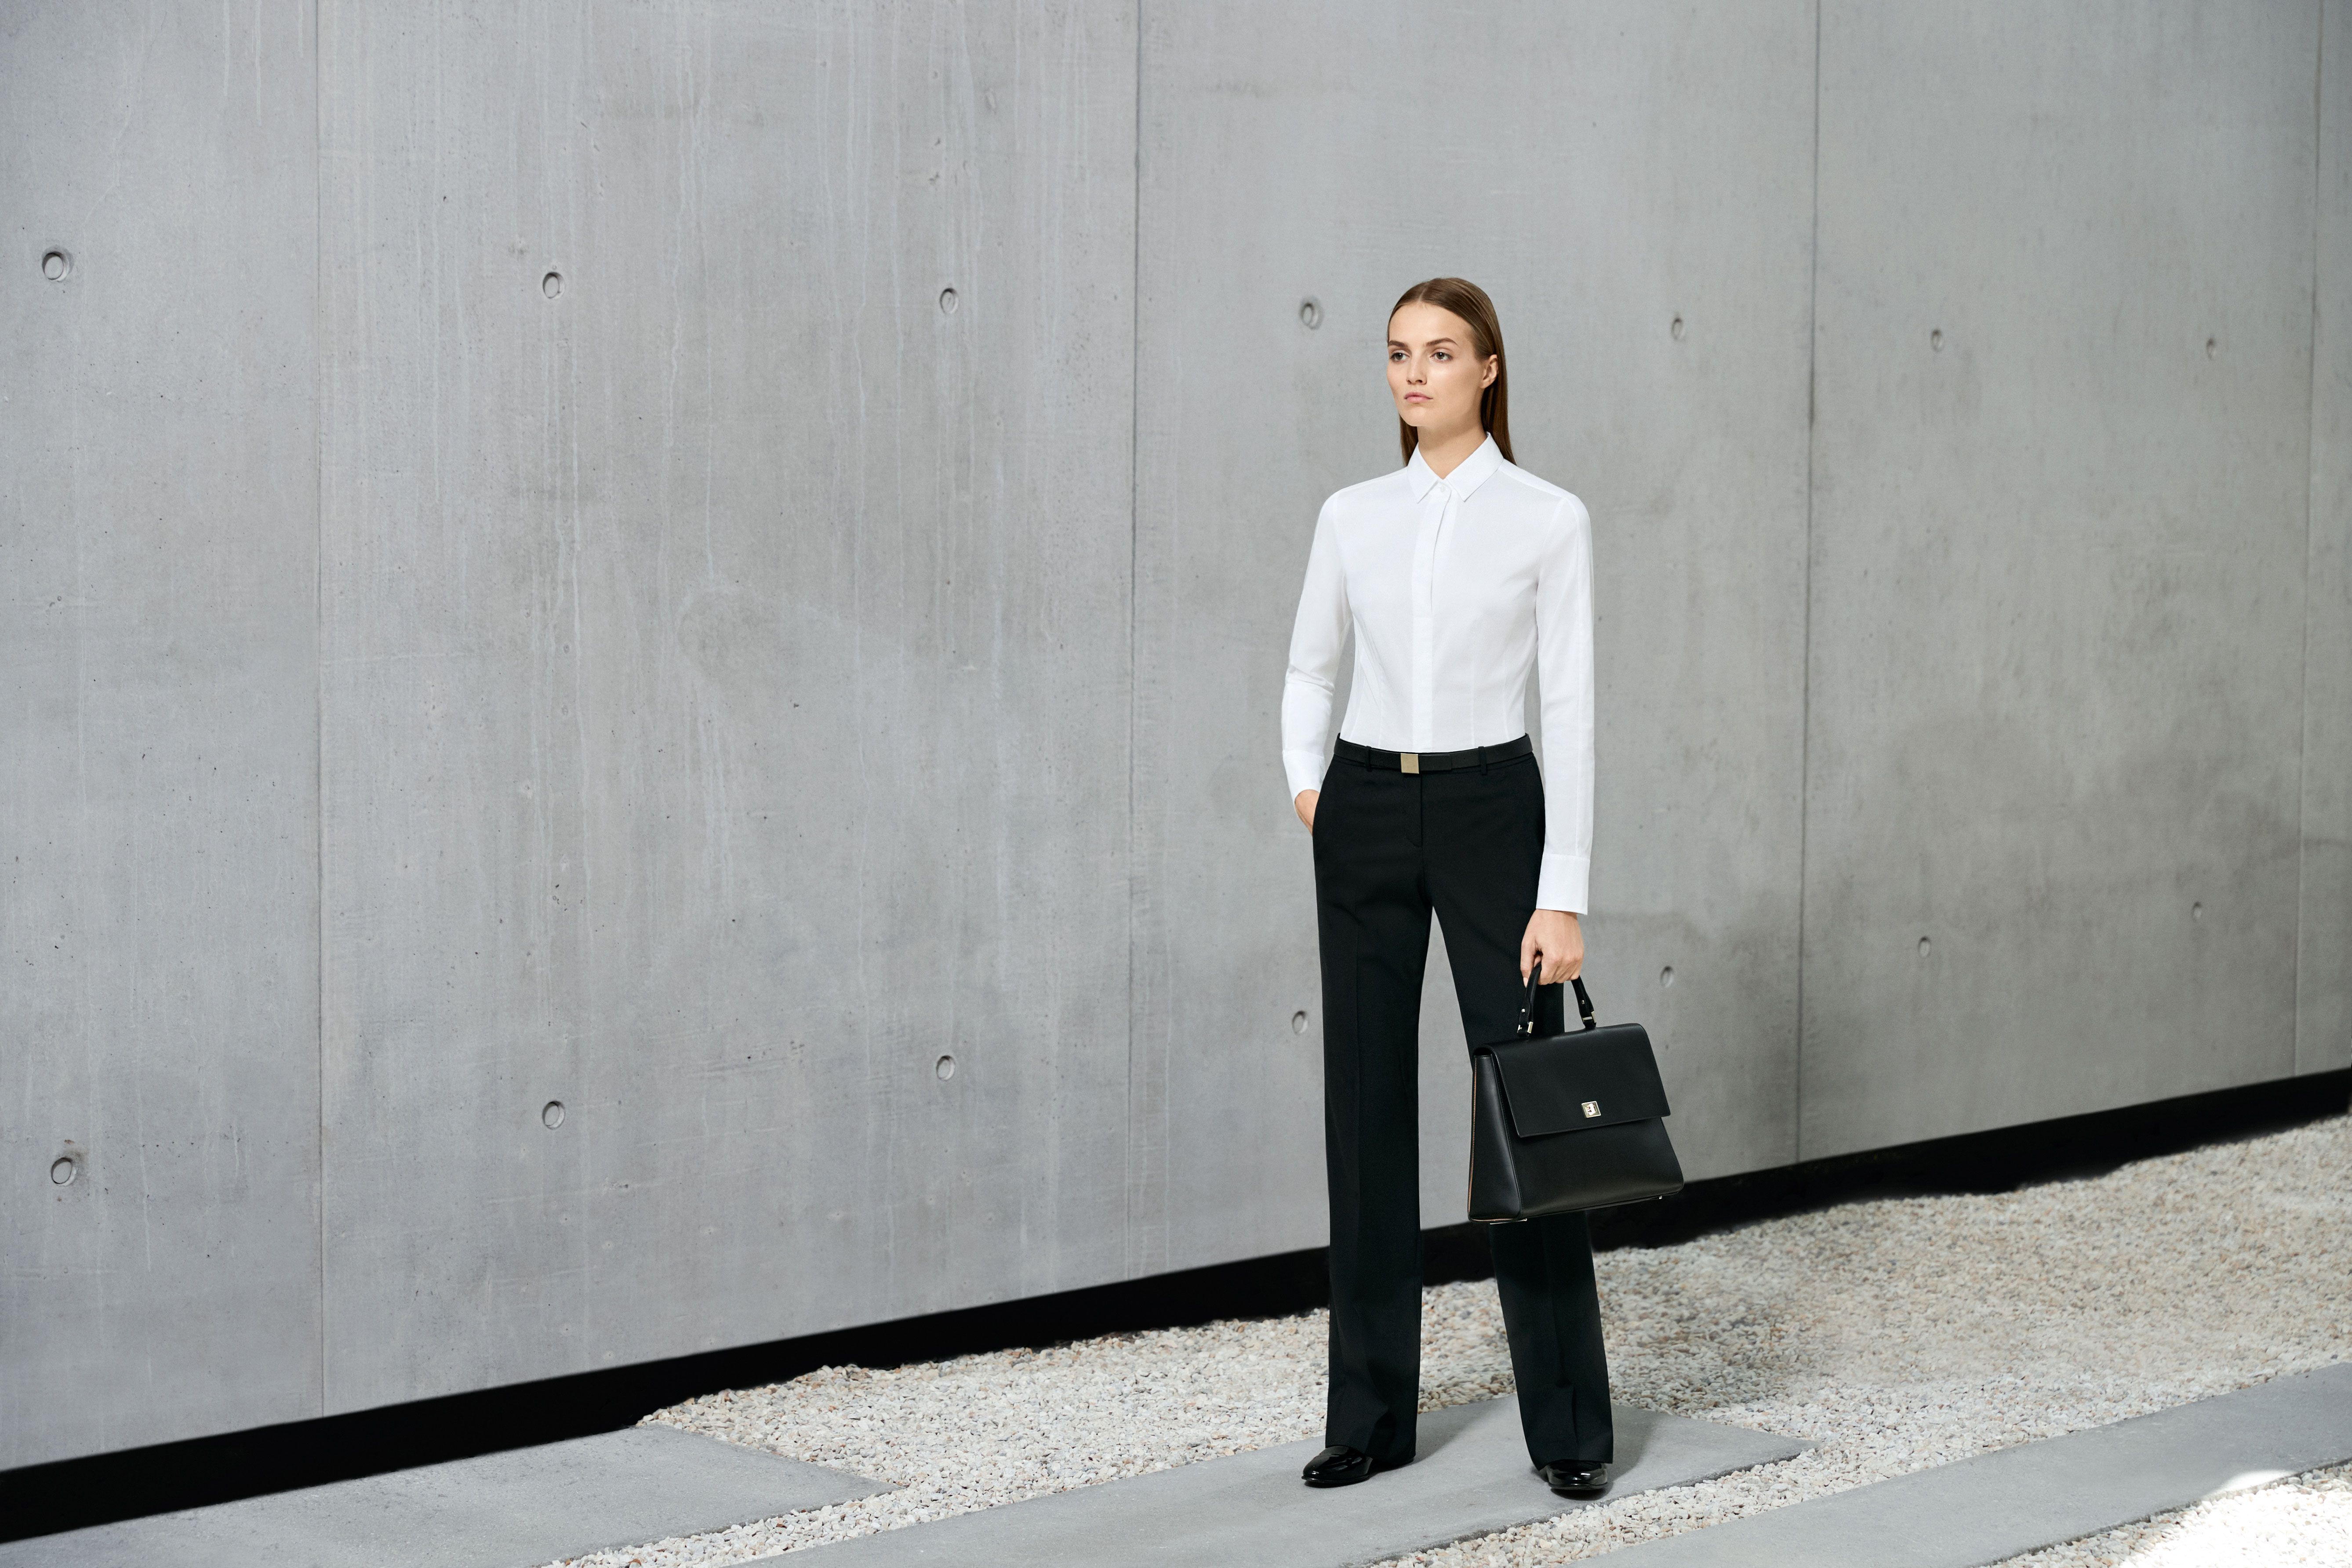 ee9534a21dea How to feel confident and dress smart at work